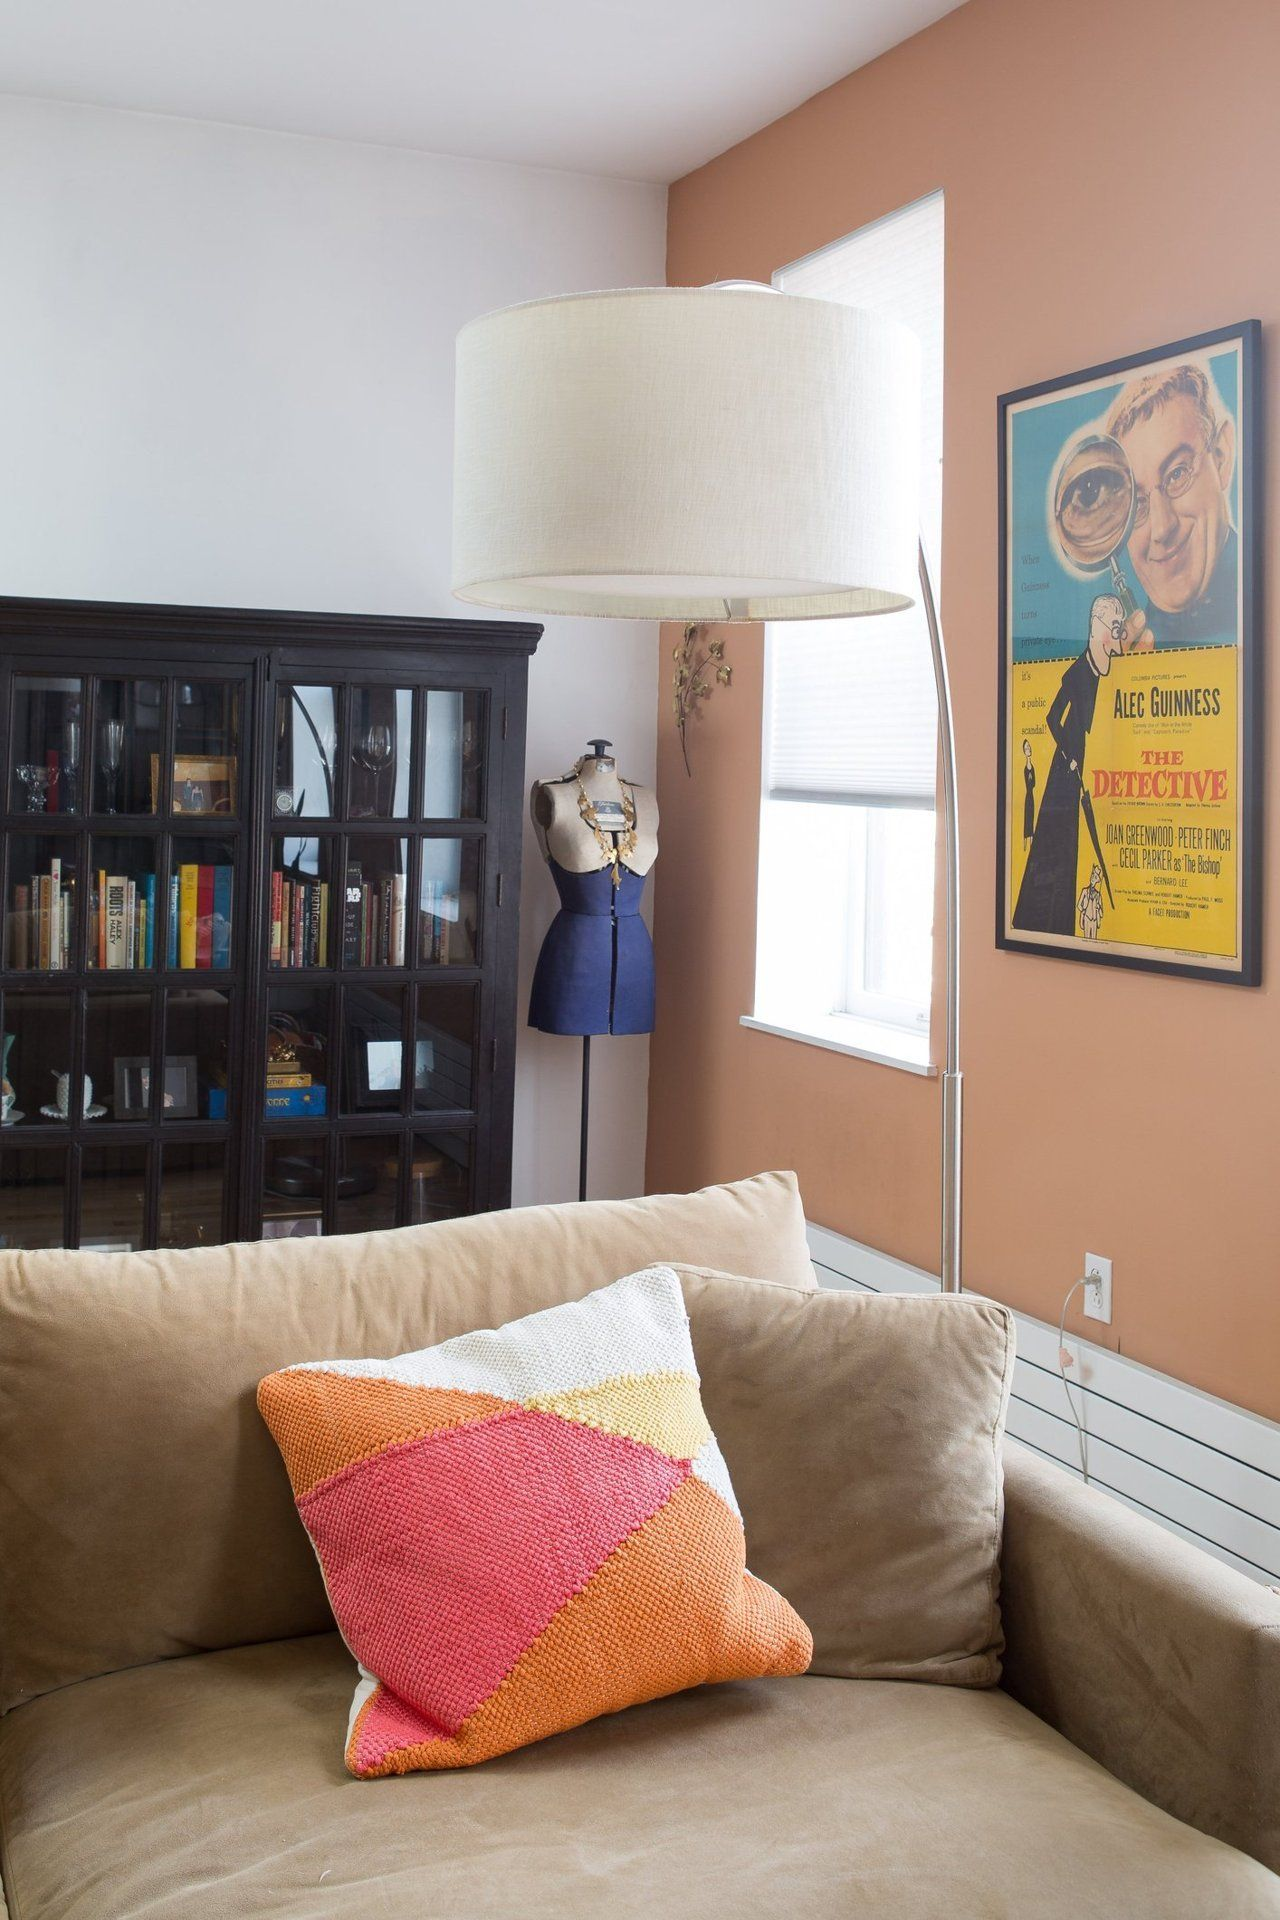 Gary & Chelsey's Musical & Mod Apartment in Queens